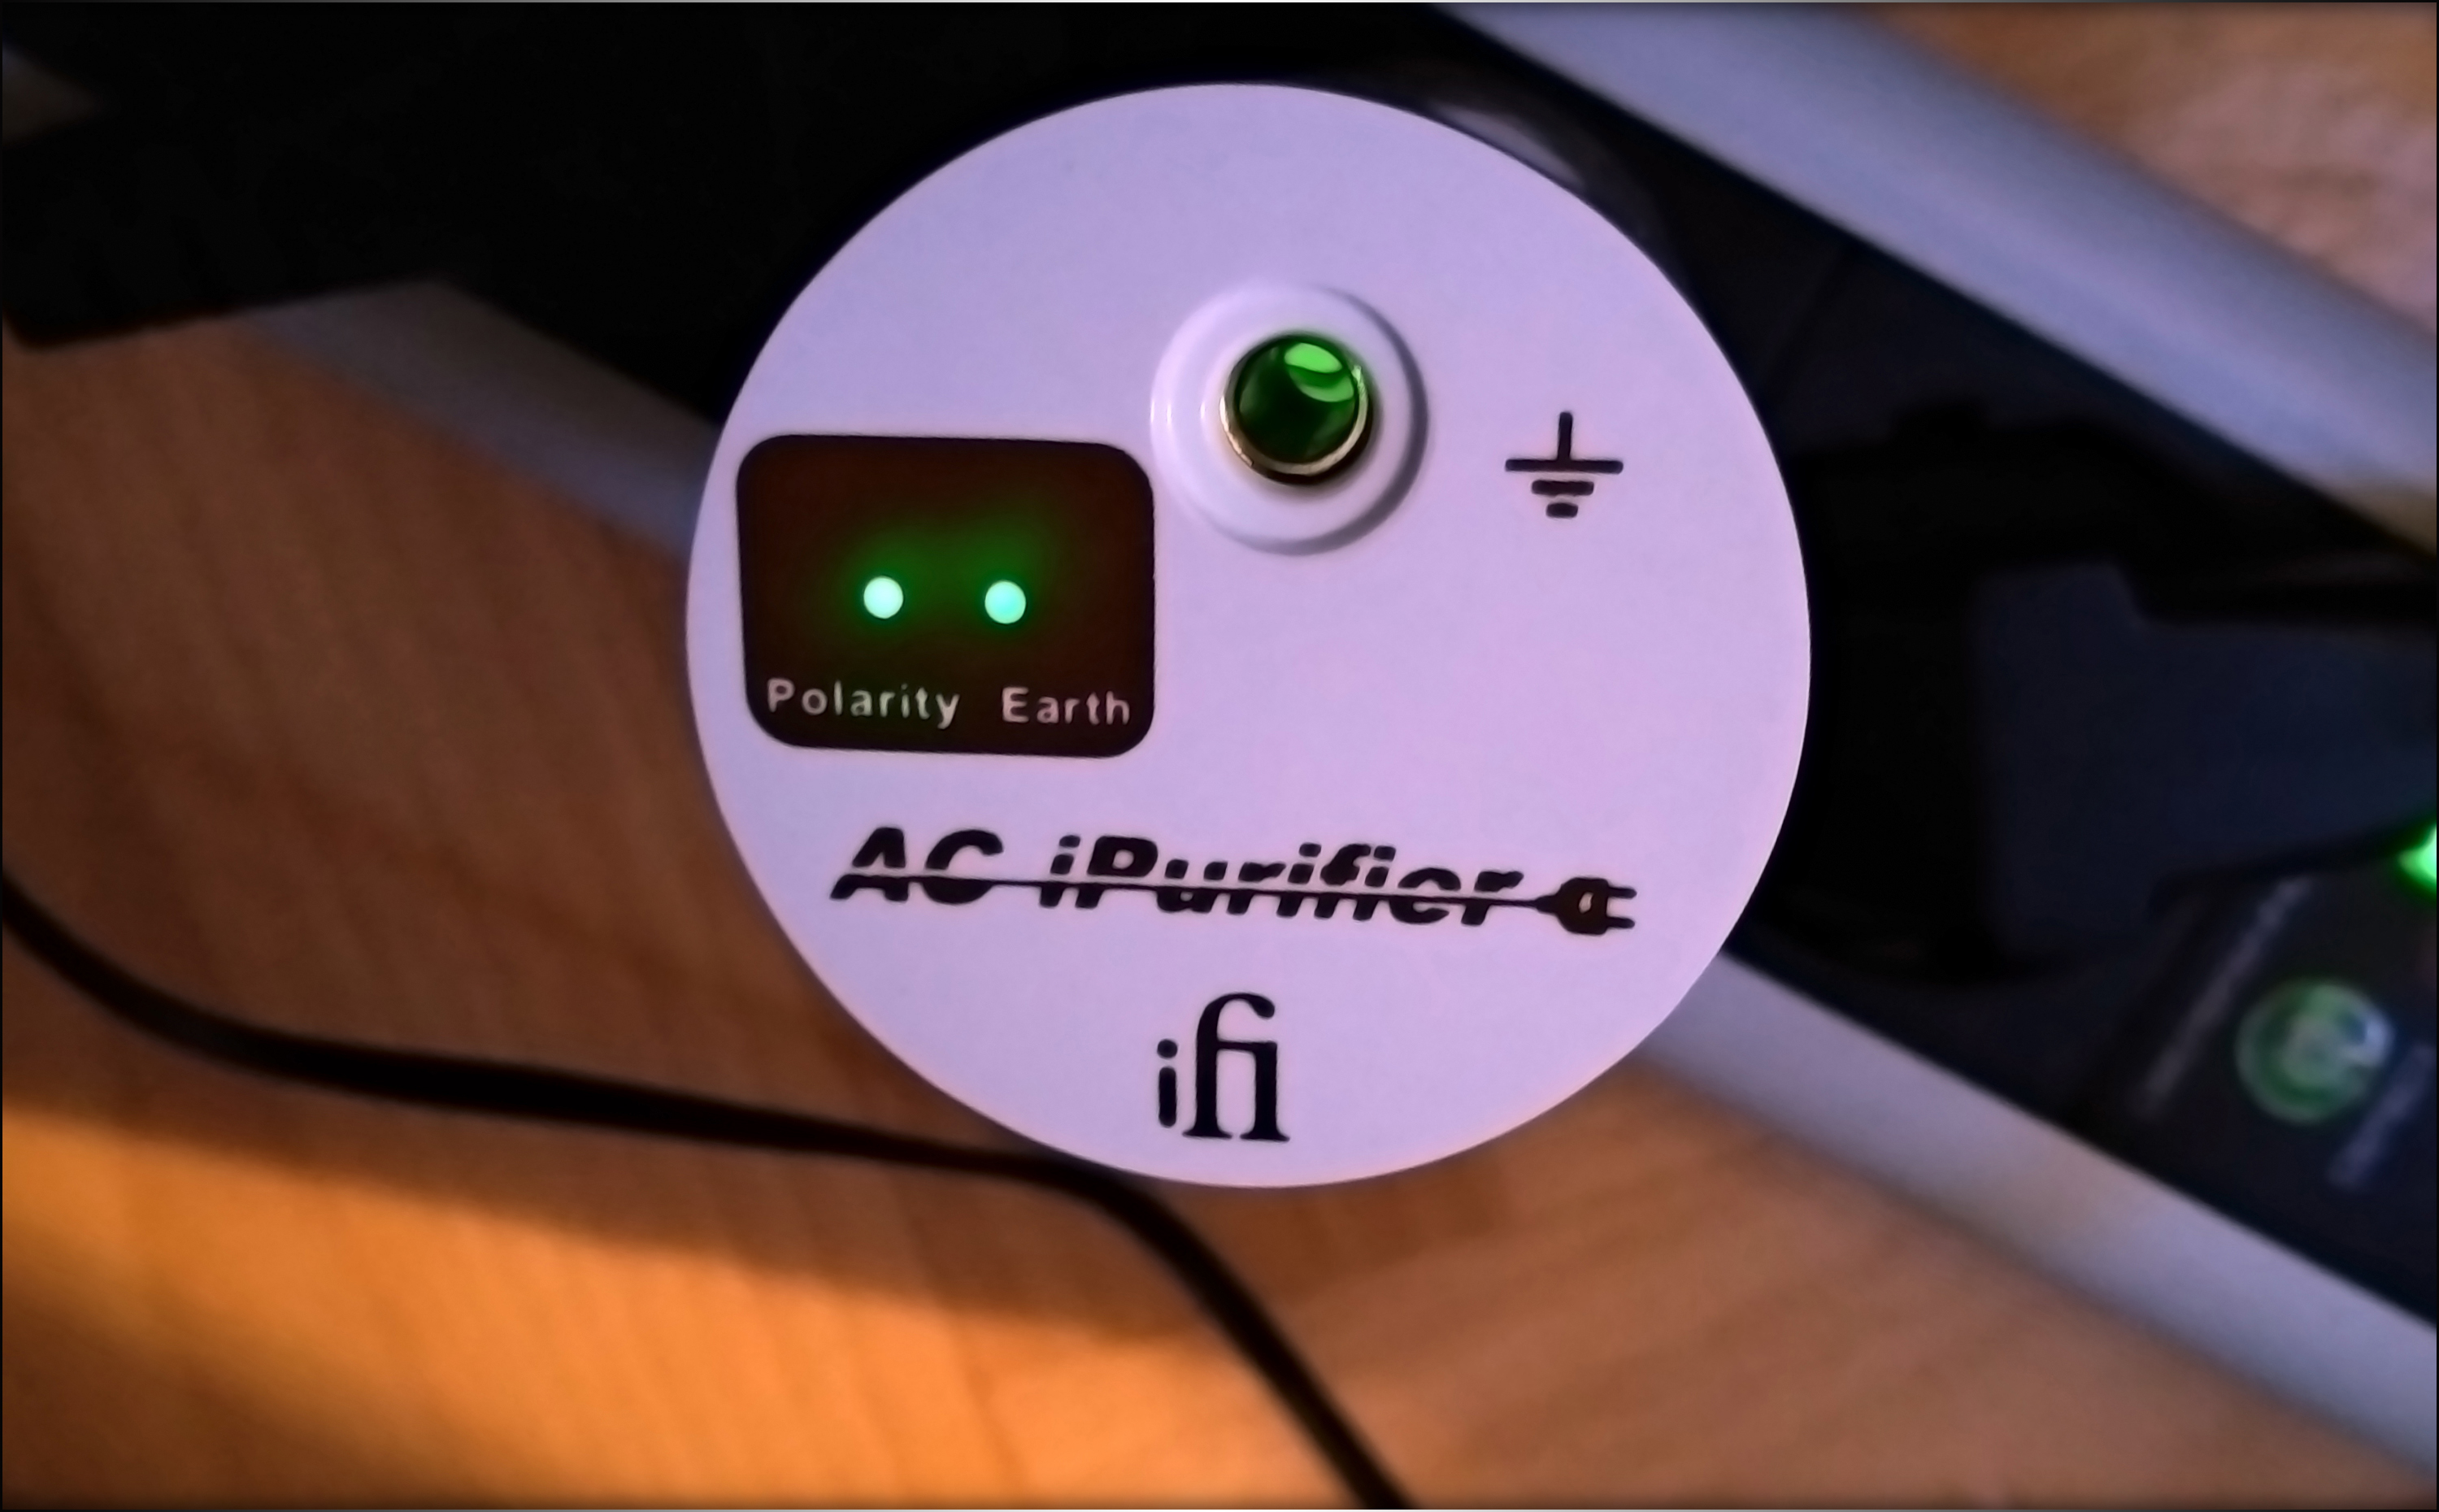 Ifi Ac Ipurifier Reviews Headphone And Discussion Head Hum Filter An Ultimate Weapon To Remove Line Noise Img 20180131 120520 Hht